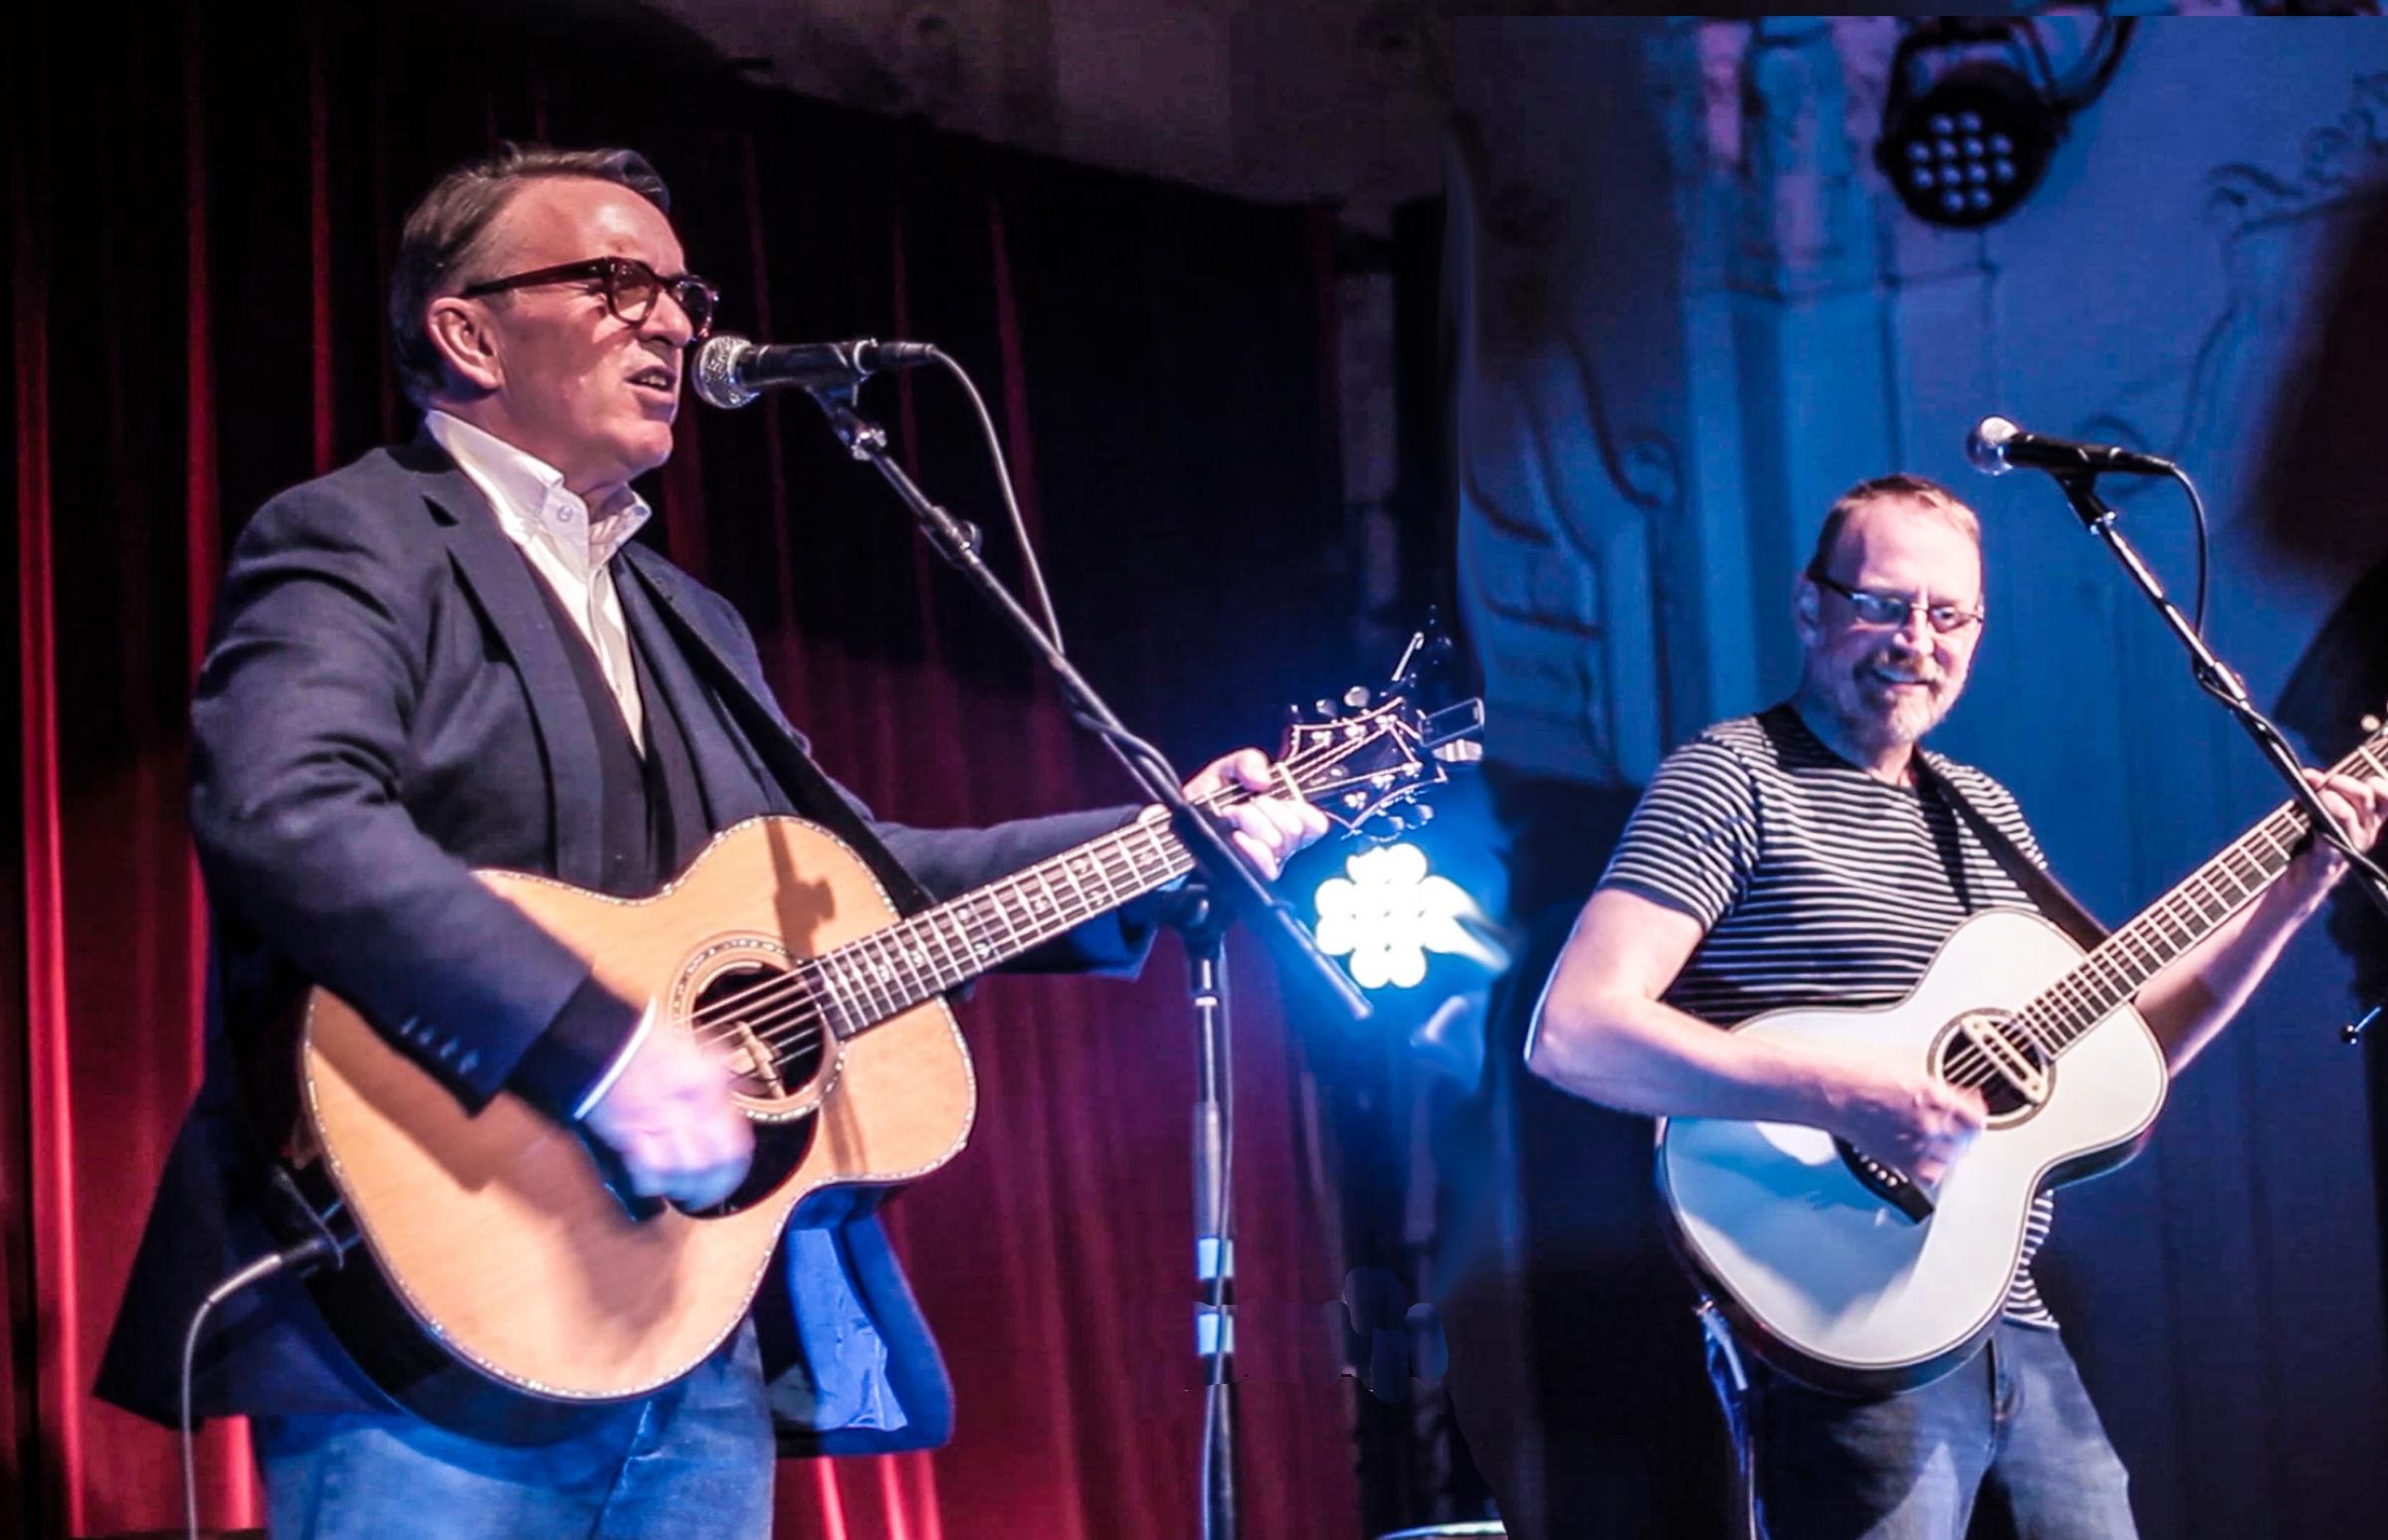 Chris Difford and Boo Hewerdine are coming to Cornwall